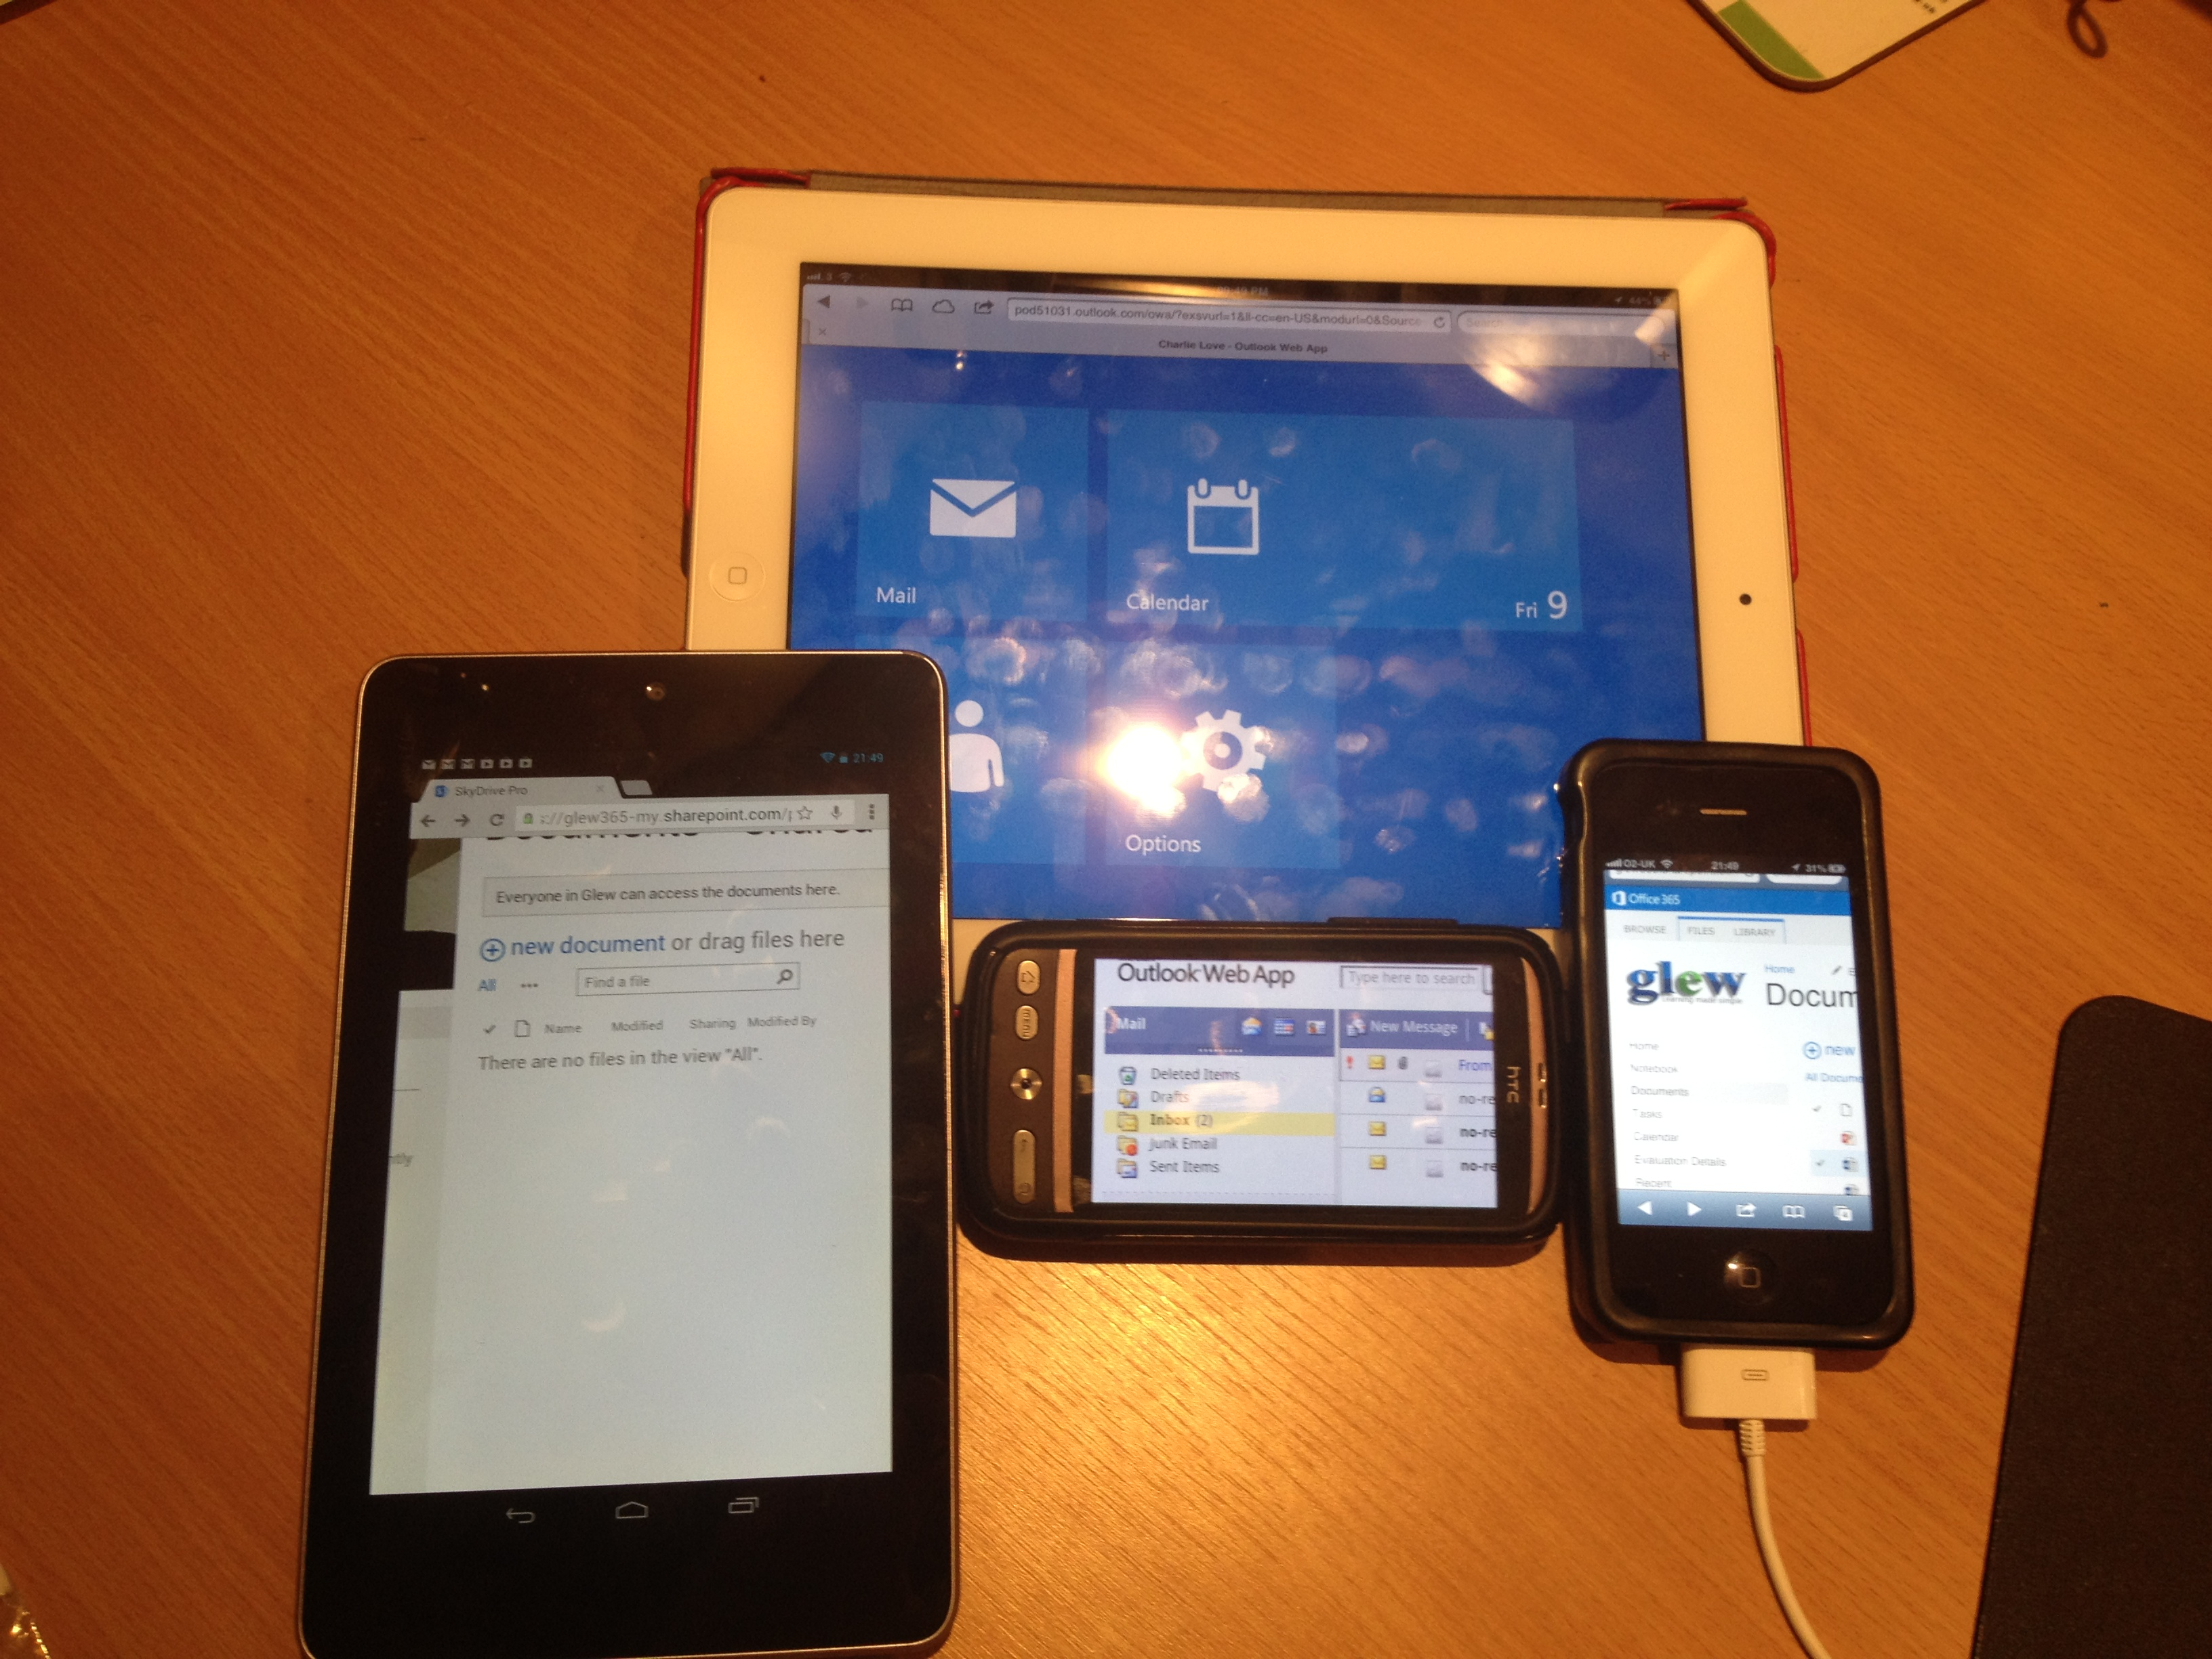 Apple iPad 2 (iOS 6.01), Google Nexus 7 (Android 4.1.2 Jellybean), iPhone 4S (iOS 6.01), HTC Desire (Android 2.3.3 Gingerbread)